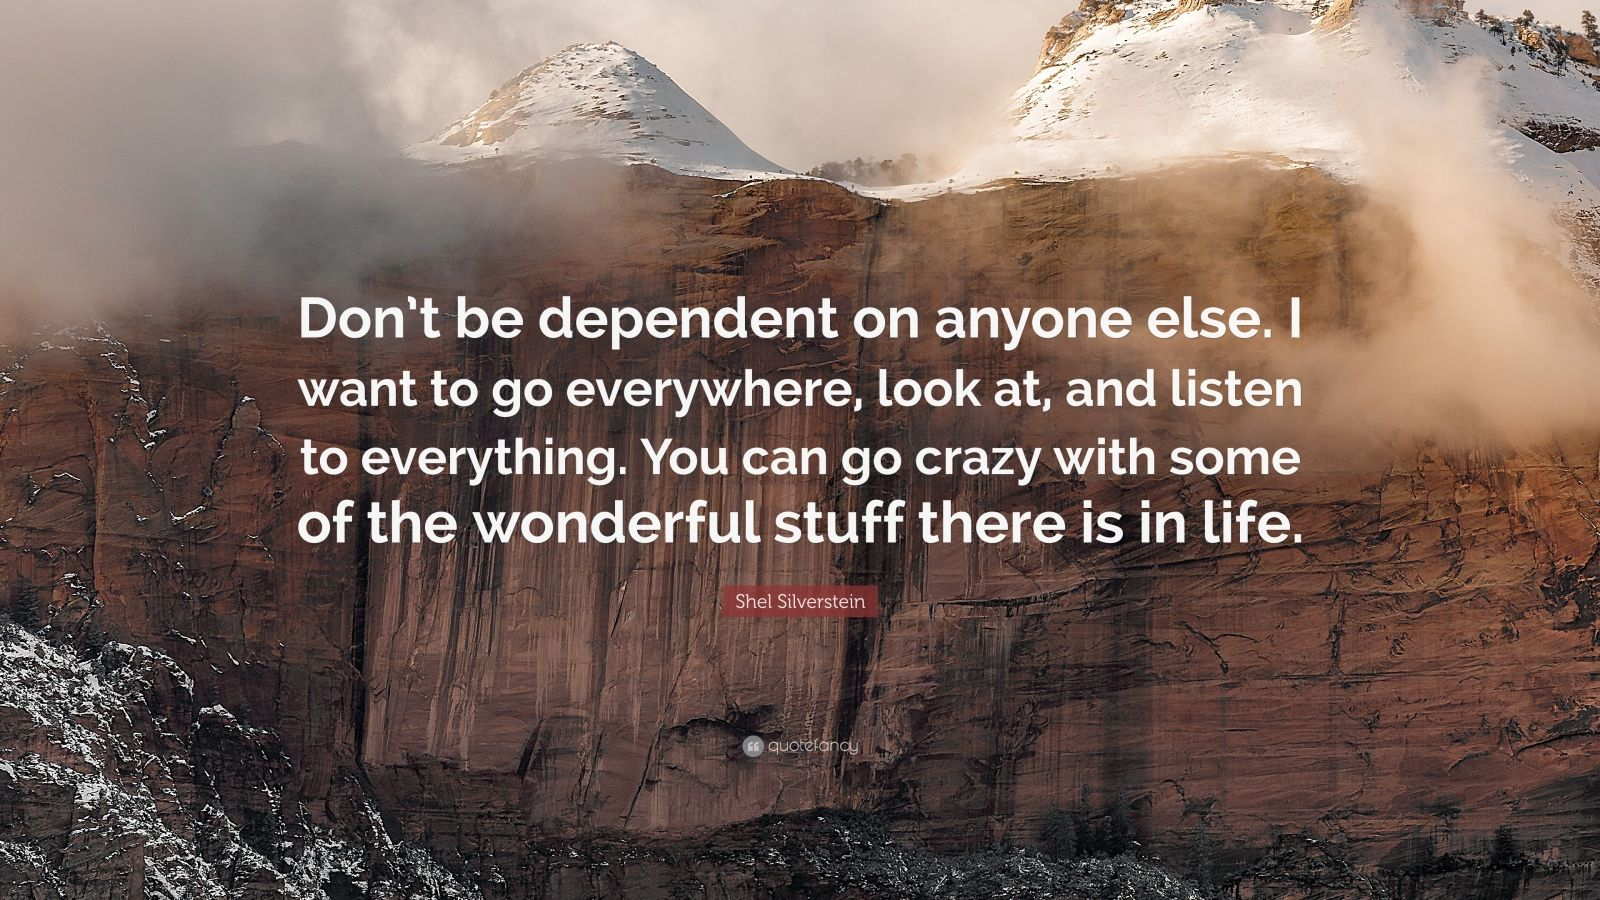 """Shel Silverstein Quotes About Life: Shel Silverstein Quote: """"Don't Be Dependent On Anyone Else"""